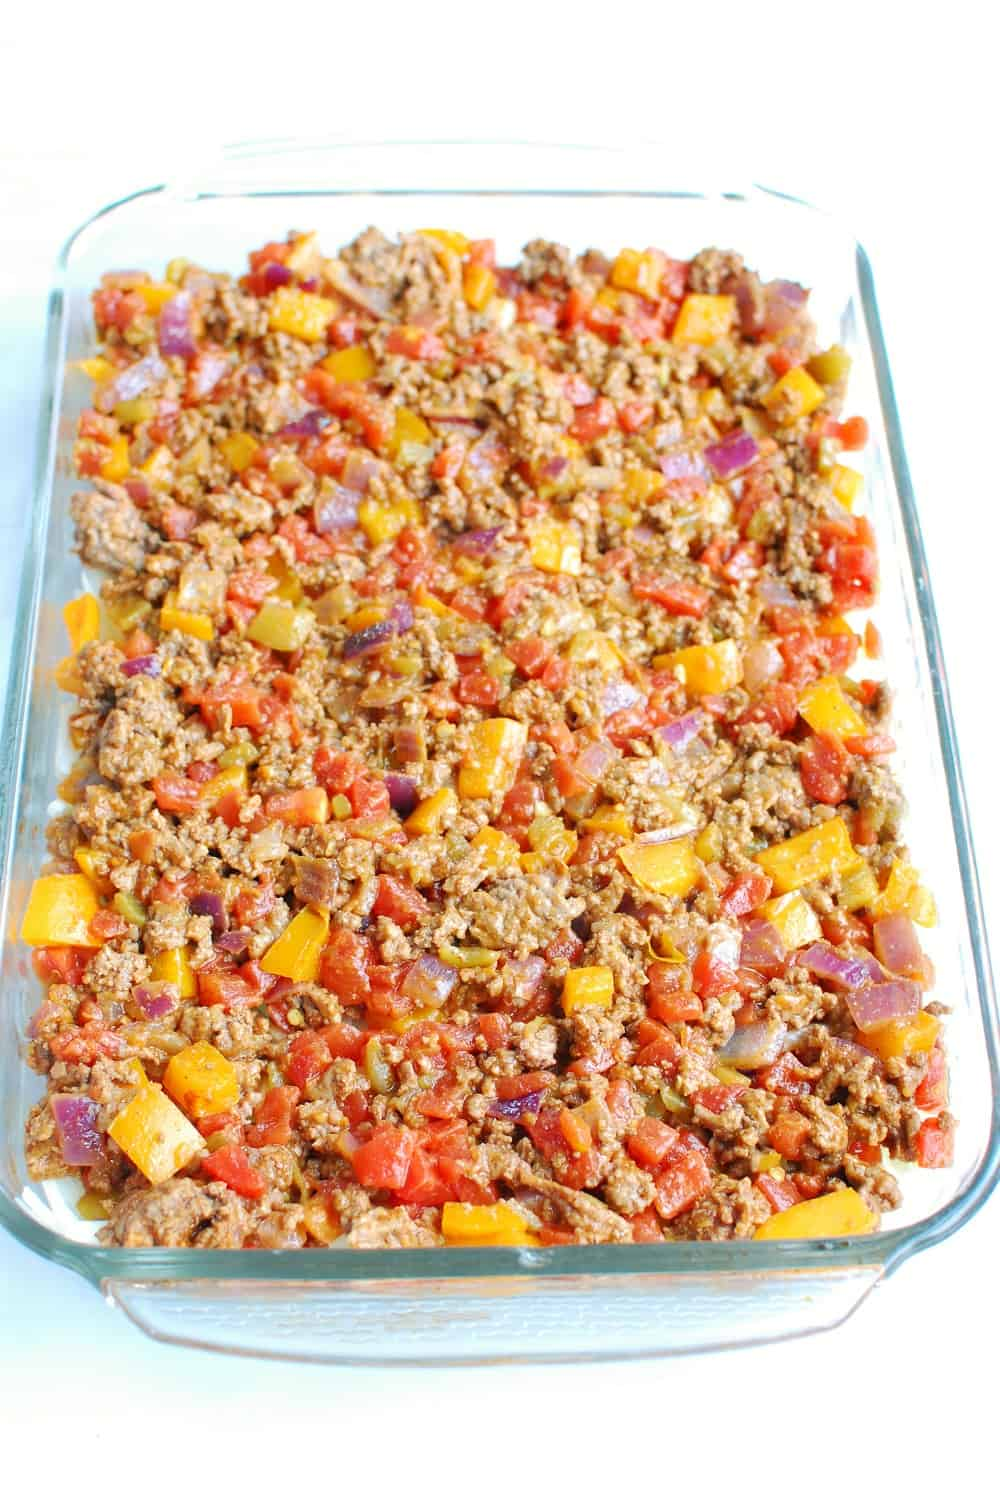 a casserole dish filled with hashbrown potatoes then topped with a ground beef mixture